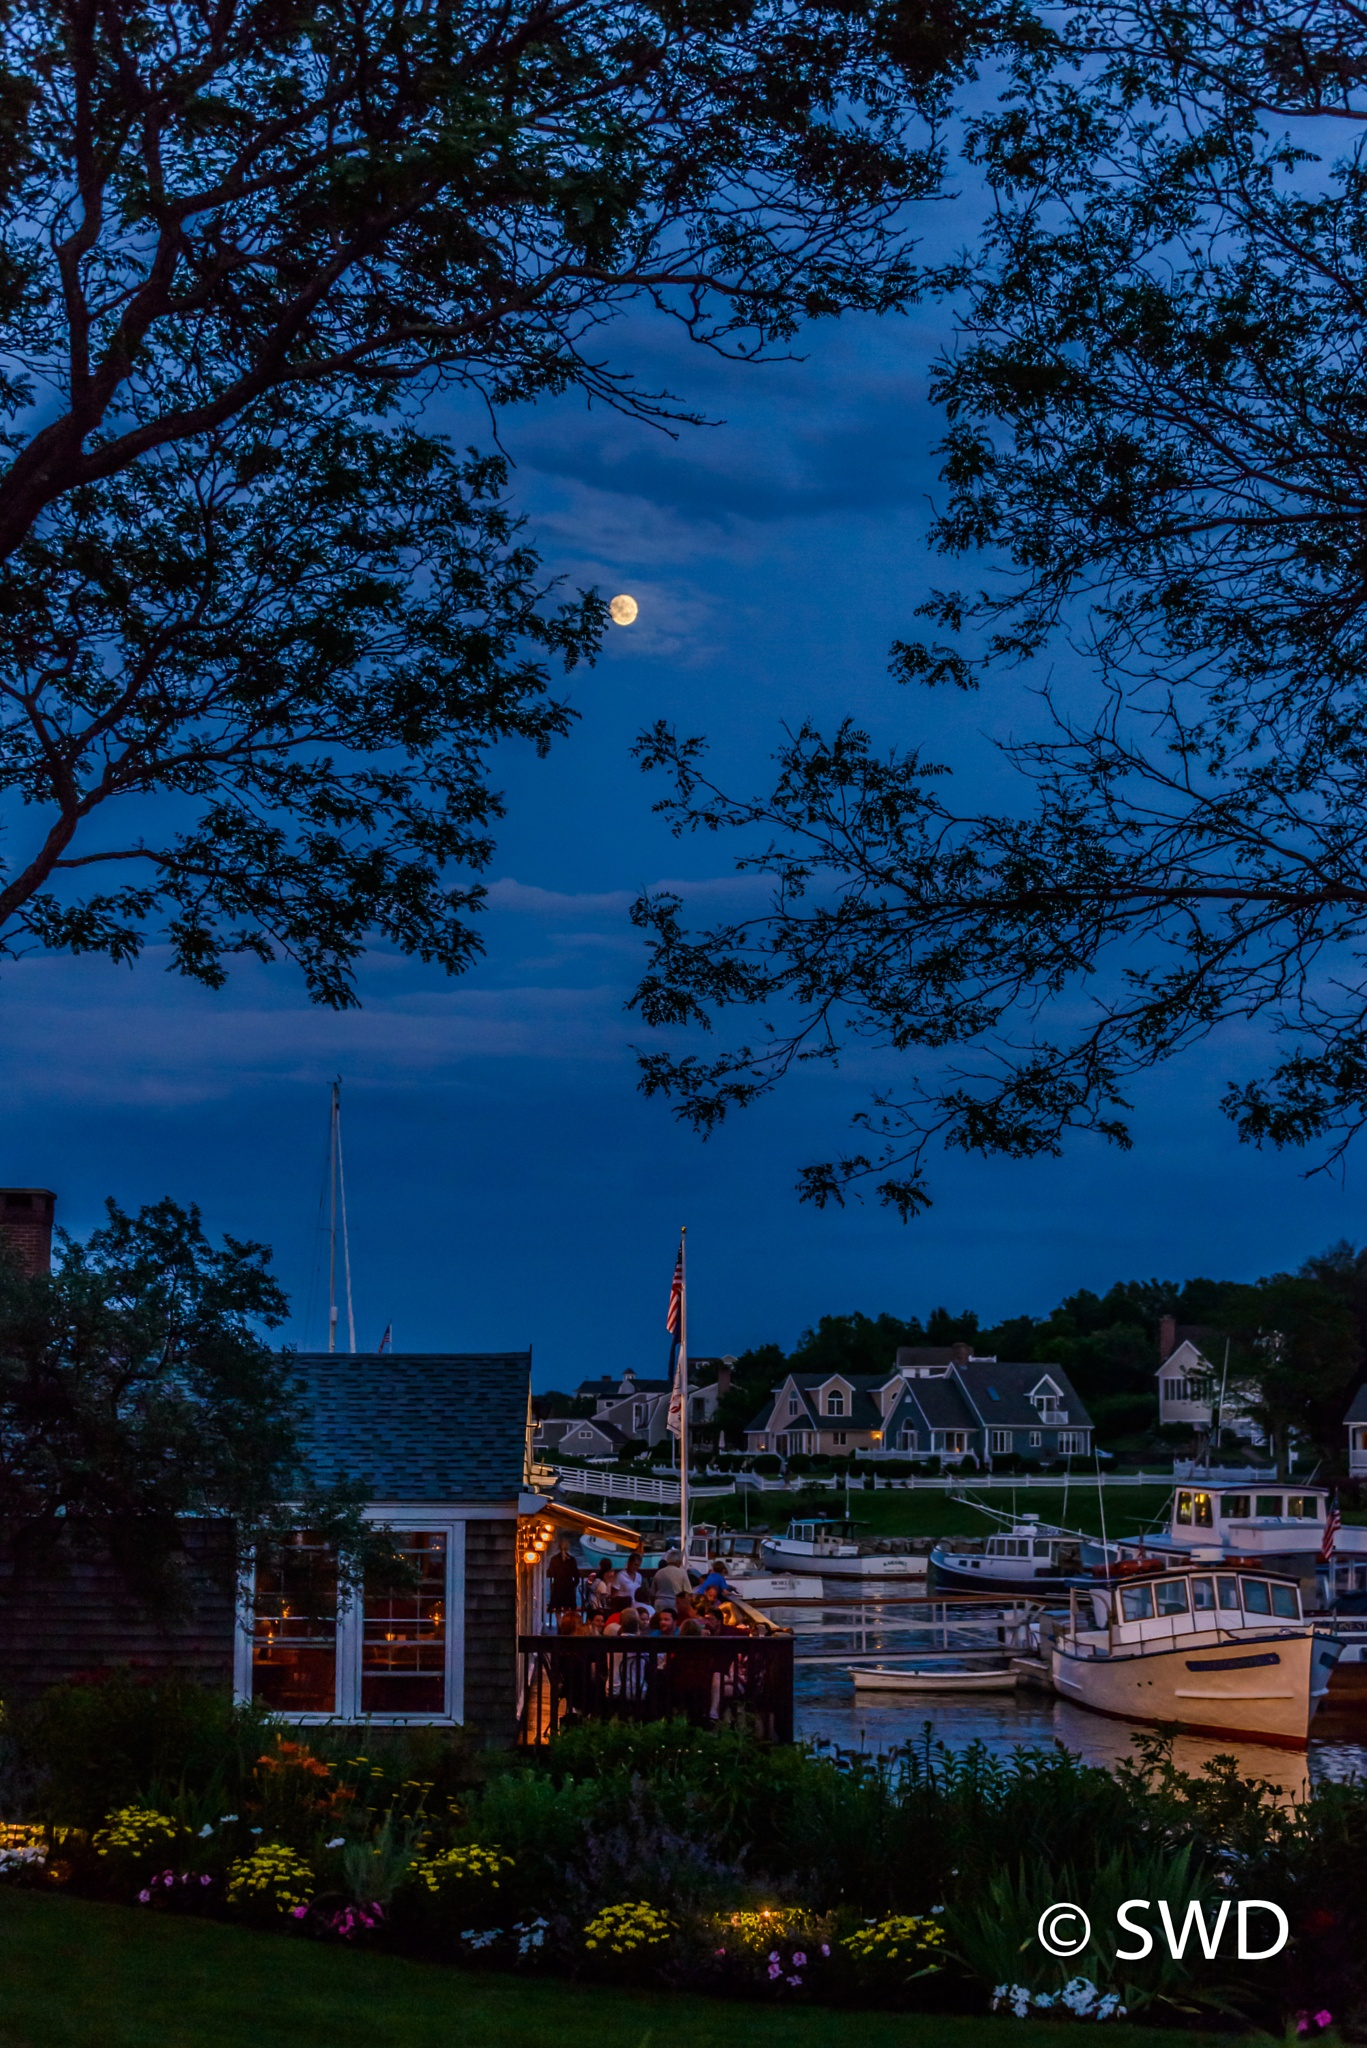 Perkins Cove, Maine by Steve Director